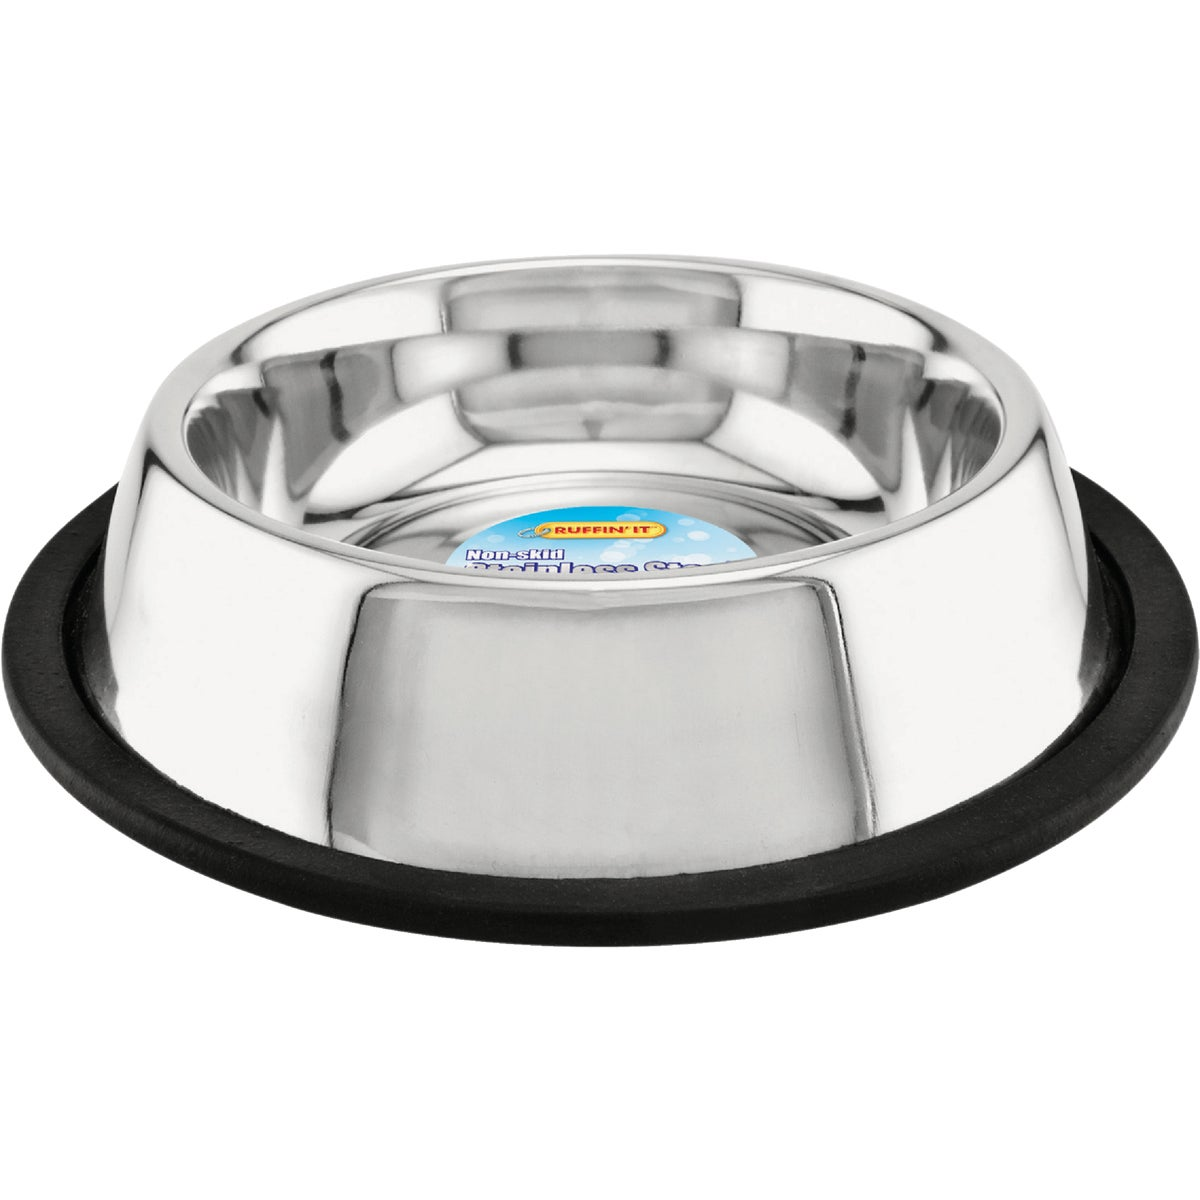 16OZ NON-SKID SS BOWL - 19016 by Westminster Pet